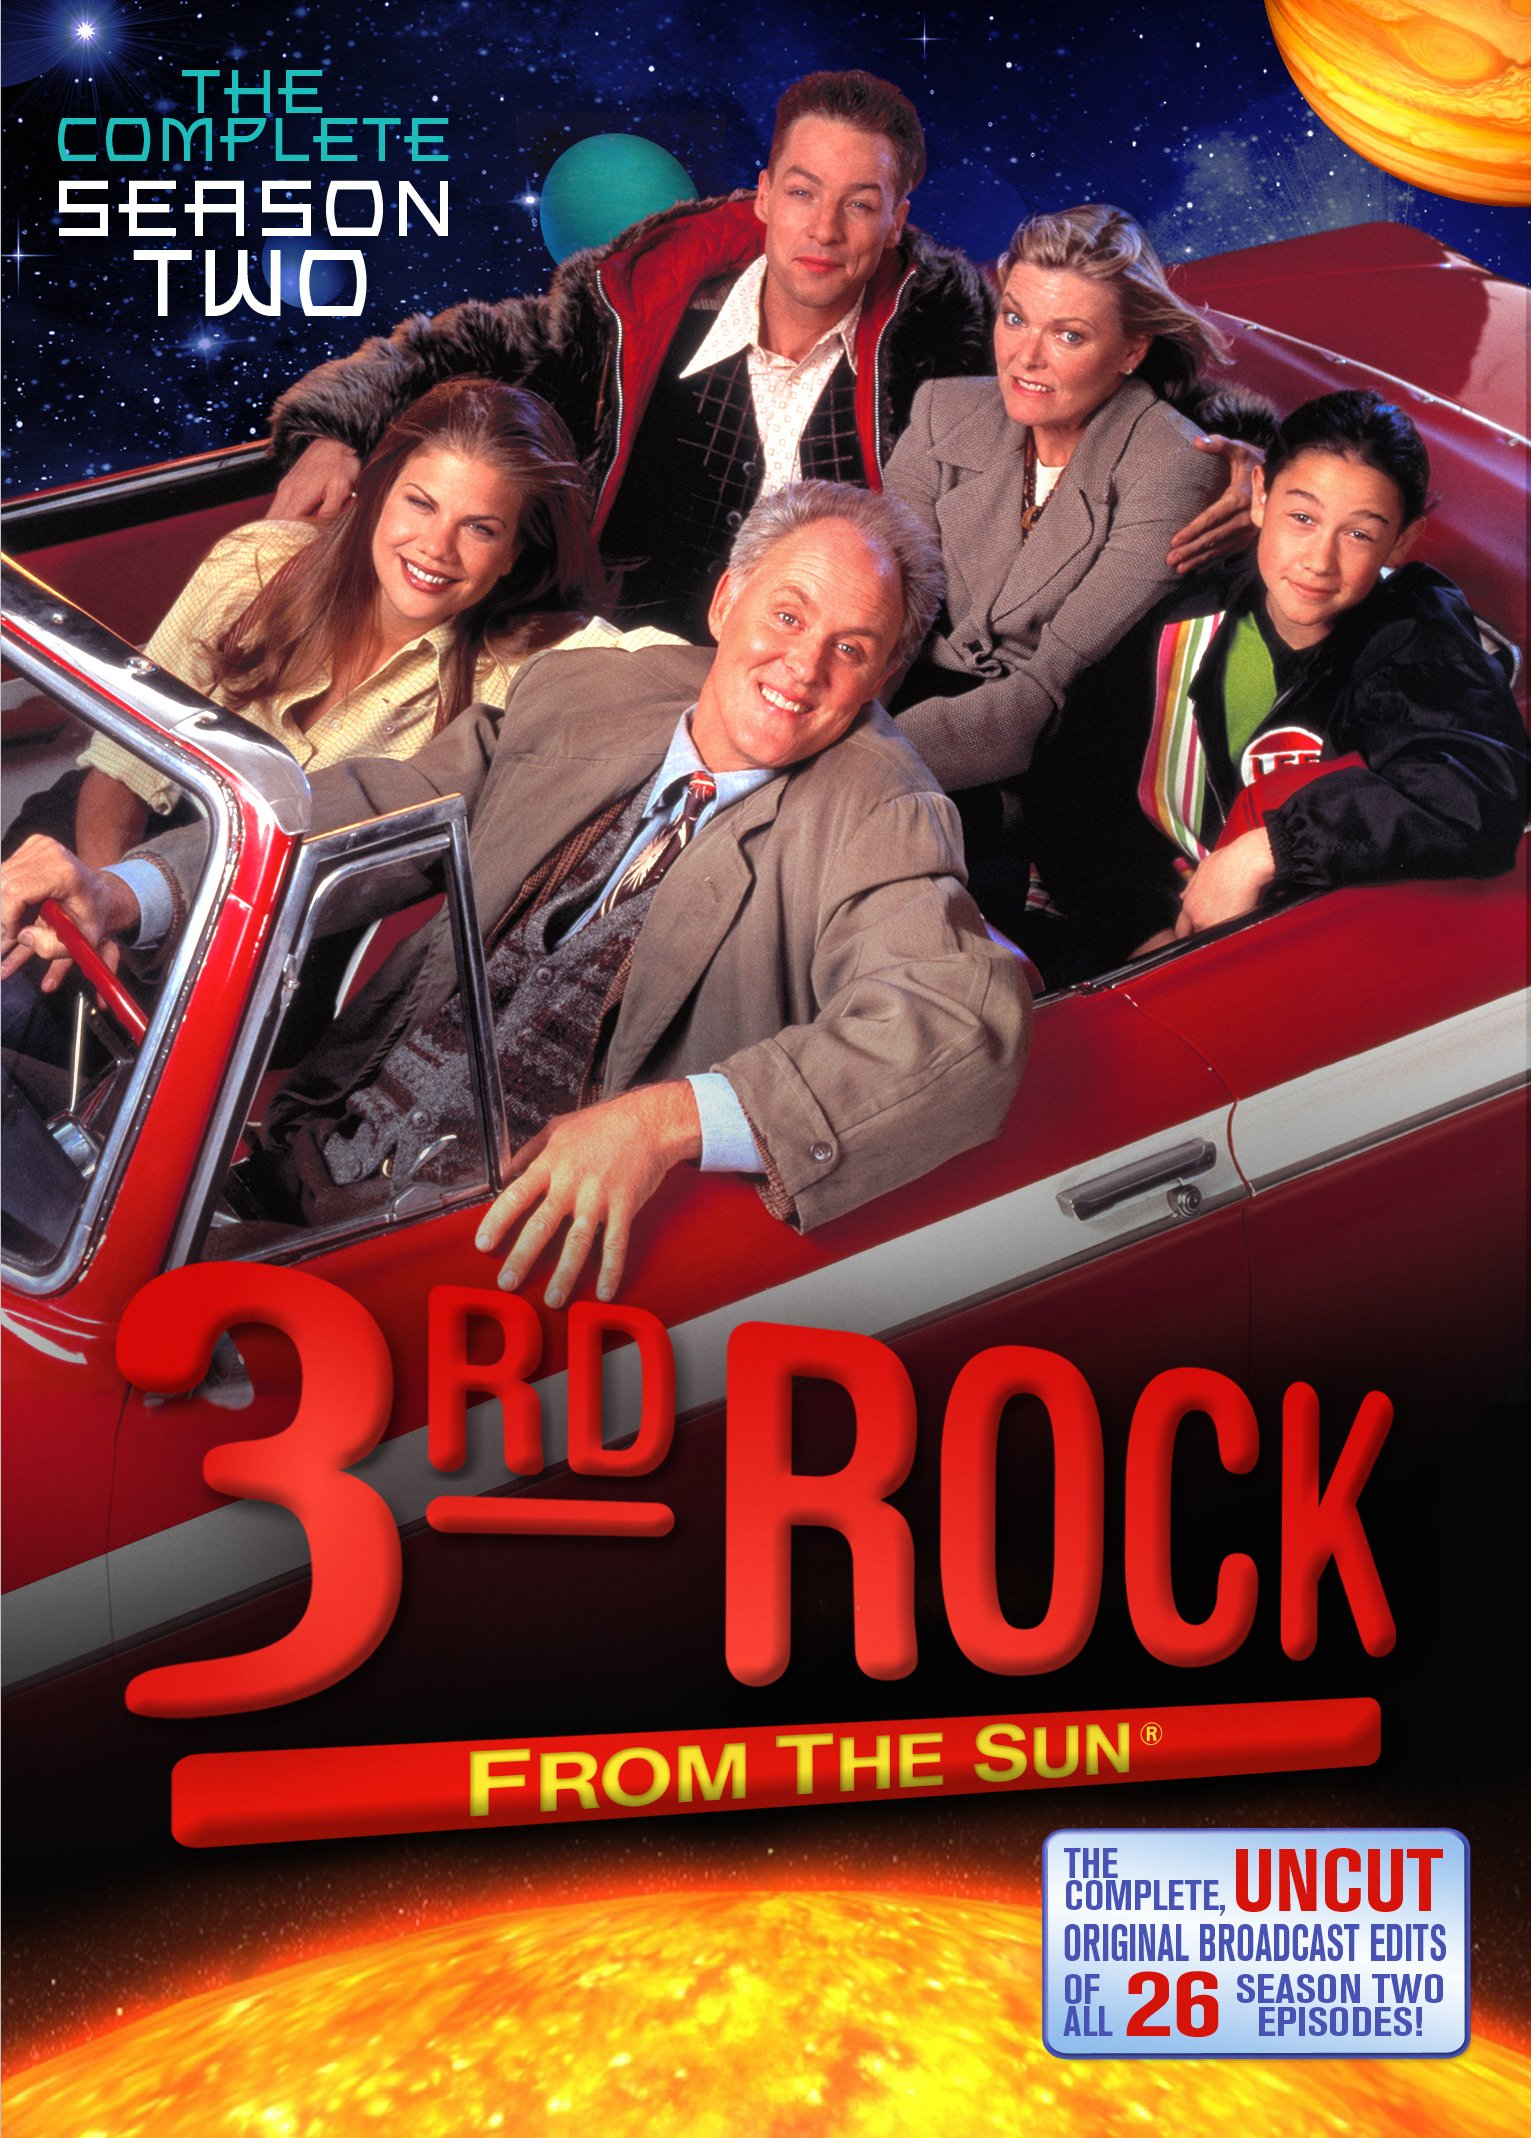 HQ 3rd Rock From The Sun Wallpapers | File 550.99Kb